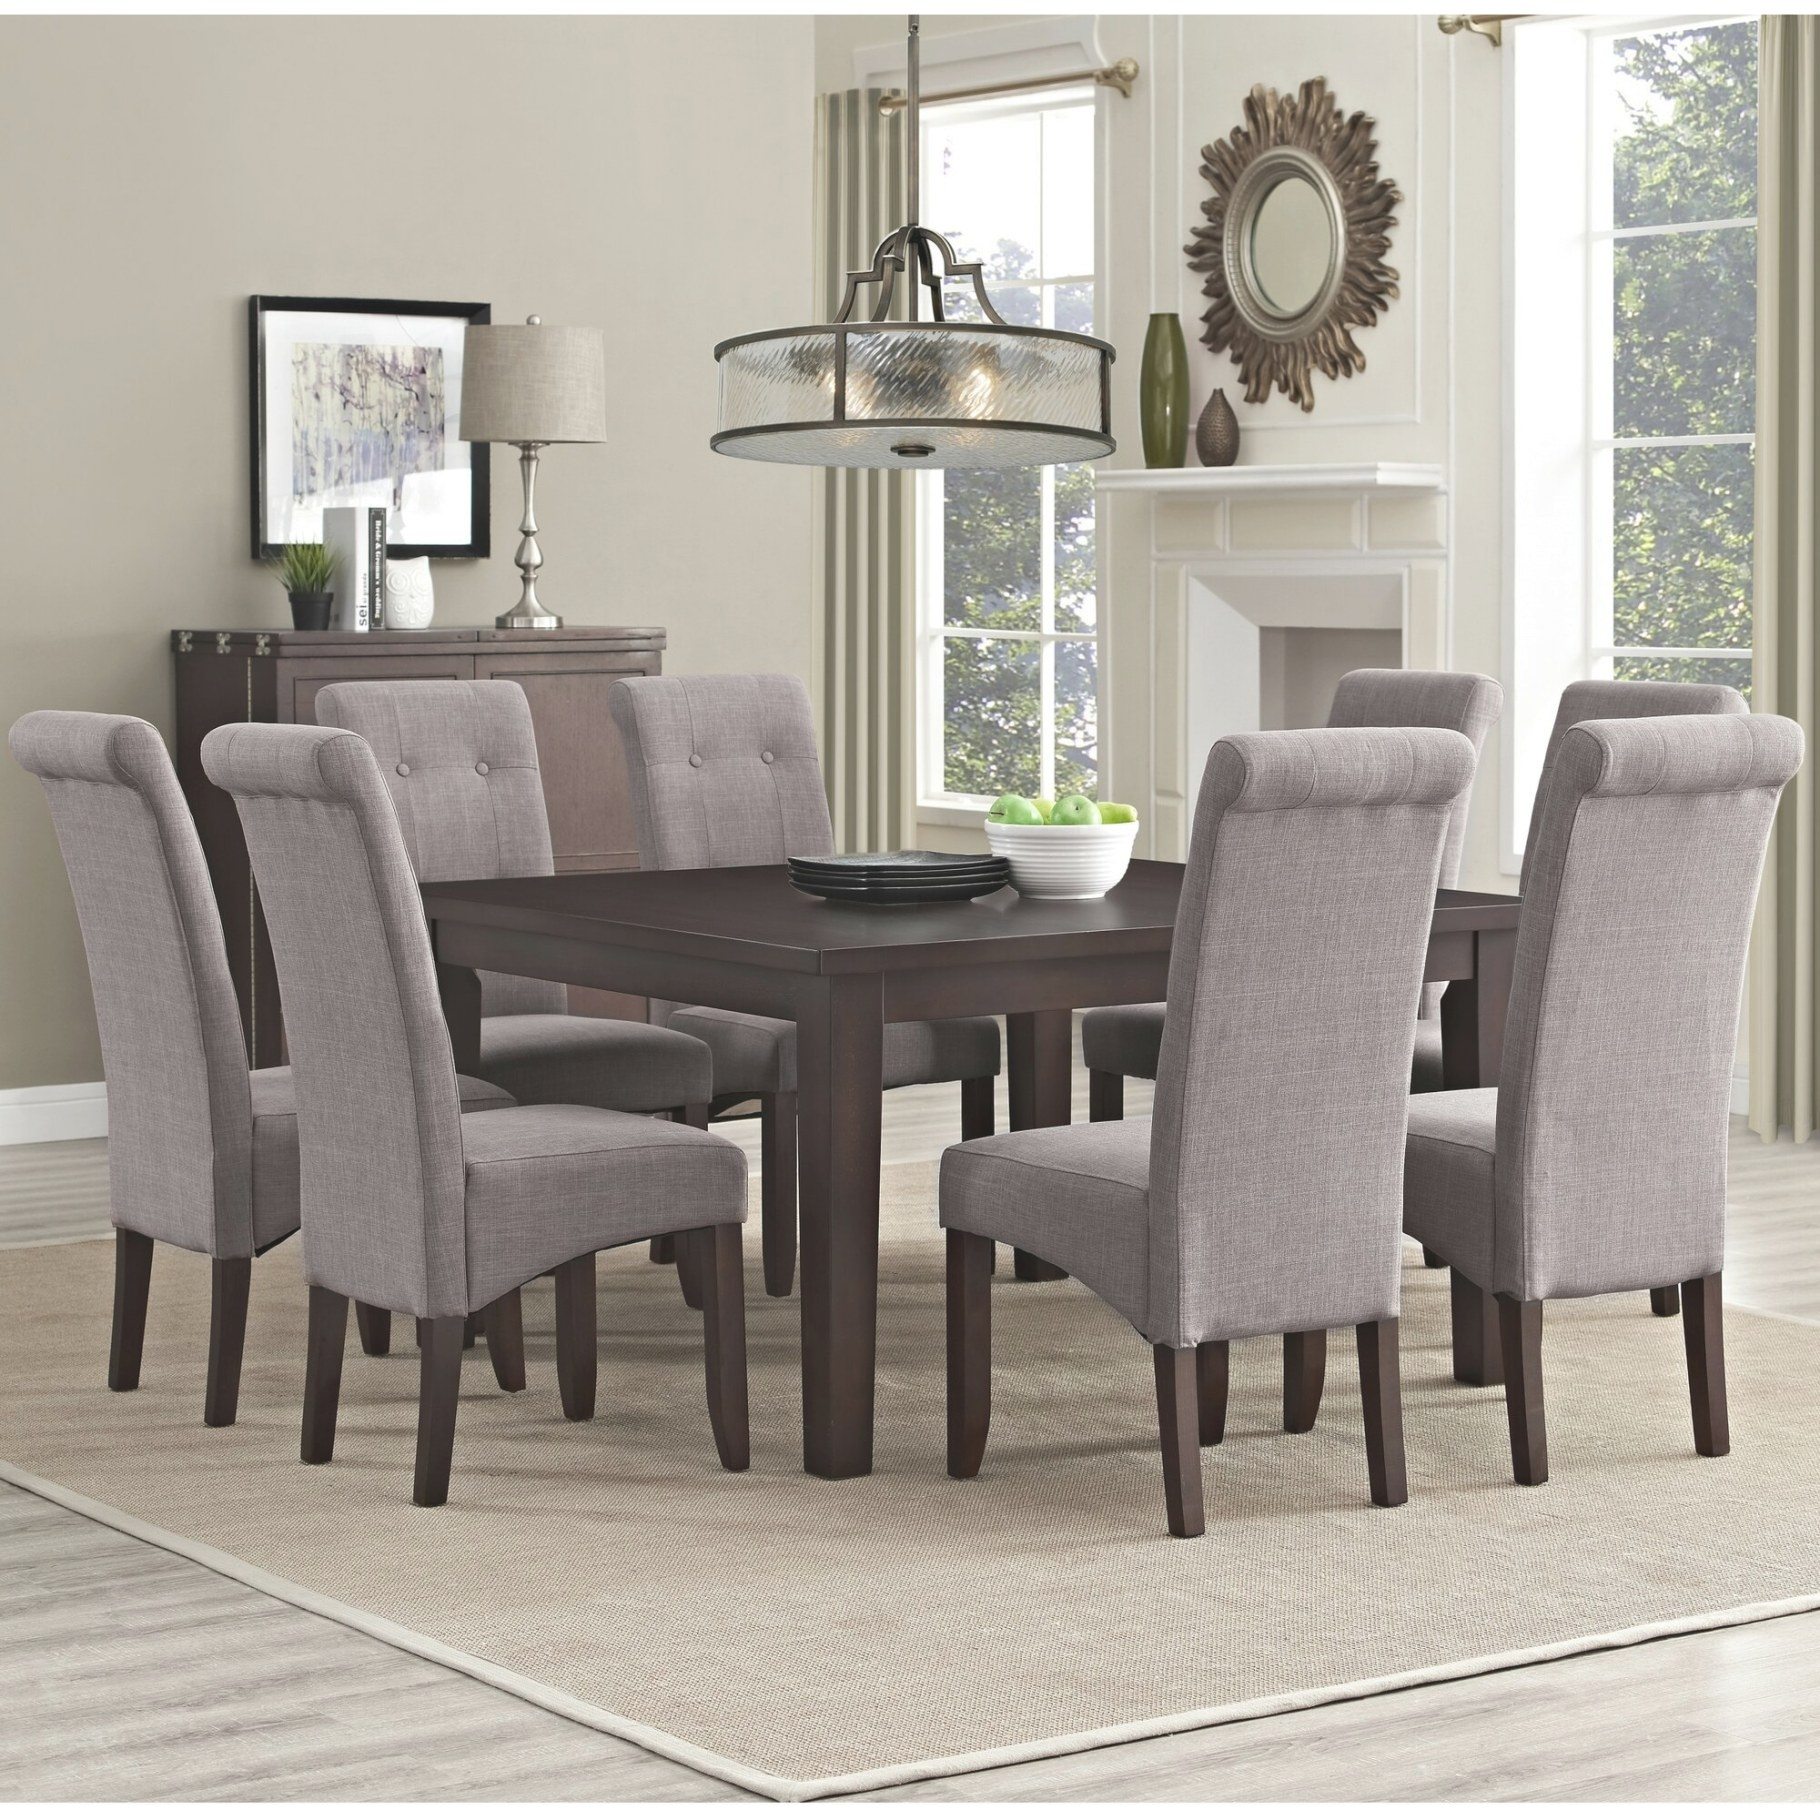 Simpli Home Eastwood 9 Piece Dining Set & Reviews | Wayfair with regard to 9 Piece Dining Set